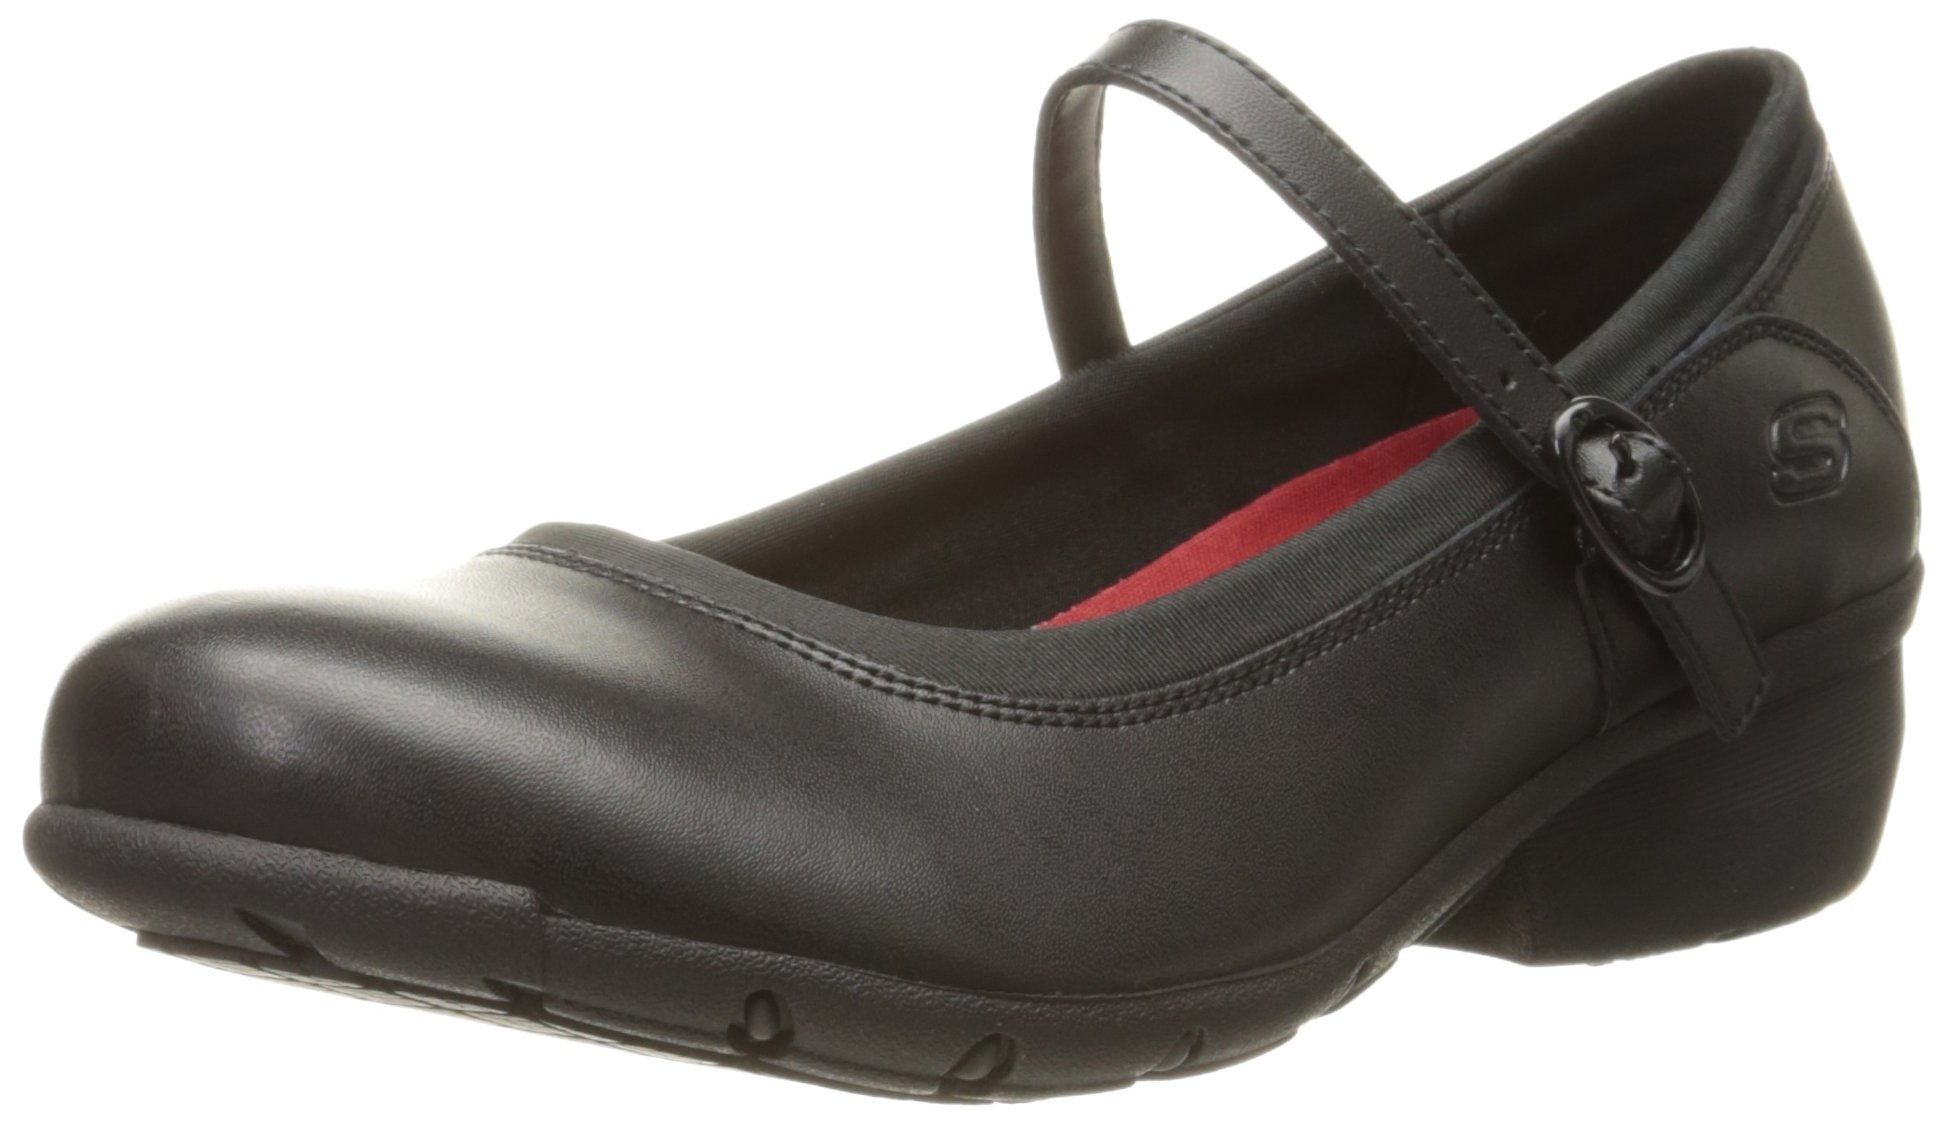 Skechers for Work Women's Toler Slip Resistant Shoe, Black, 8.5 B(M) US